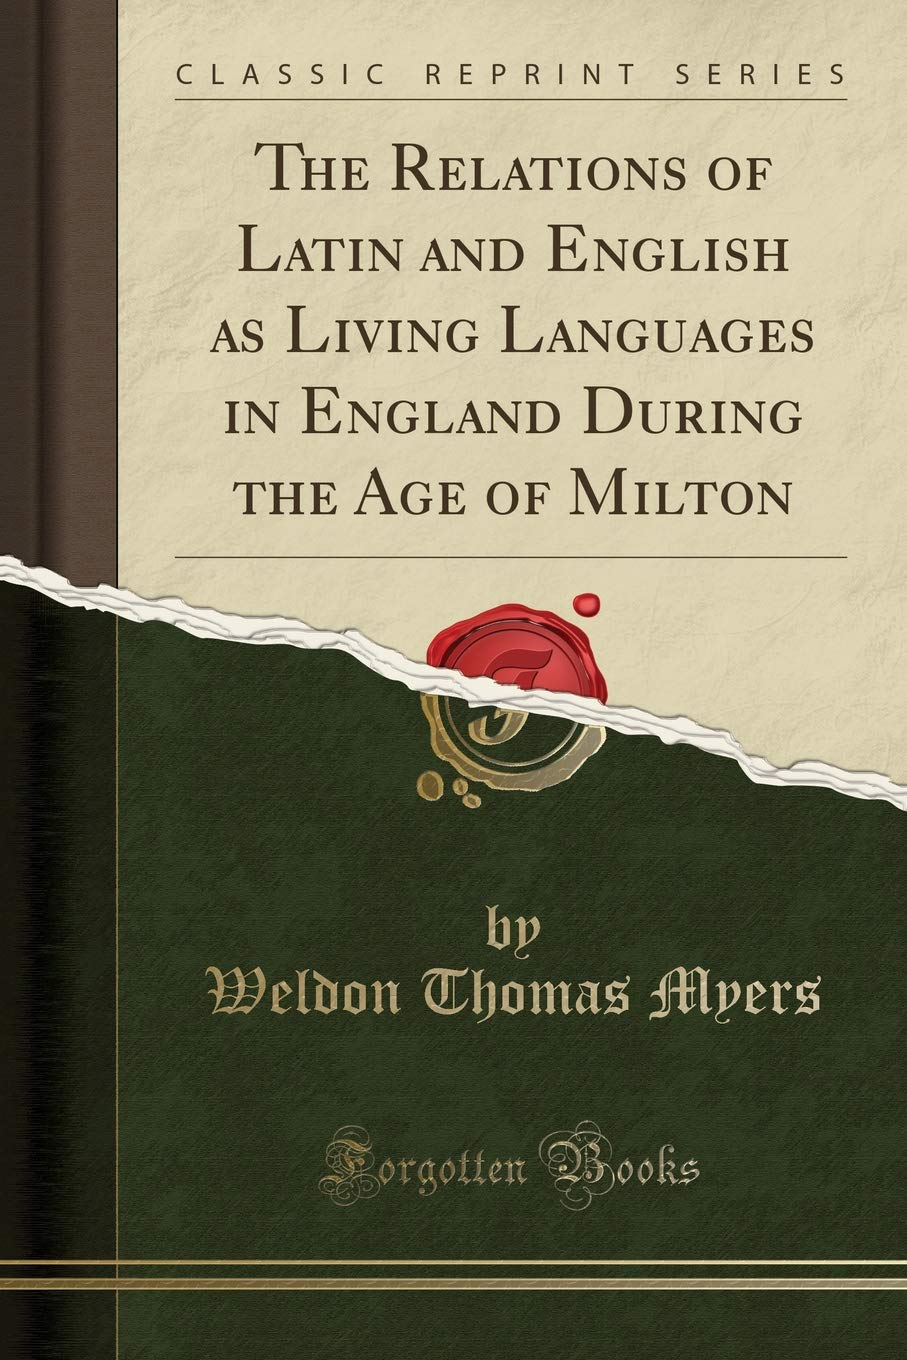 Download The Relations of Latin and English as Living Languages in England During the Age of Milton (Classic Reprint) PDF ePub ebook